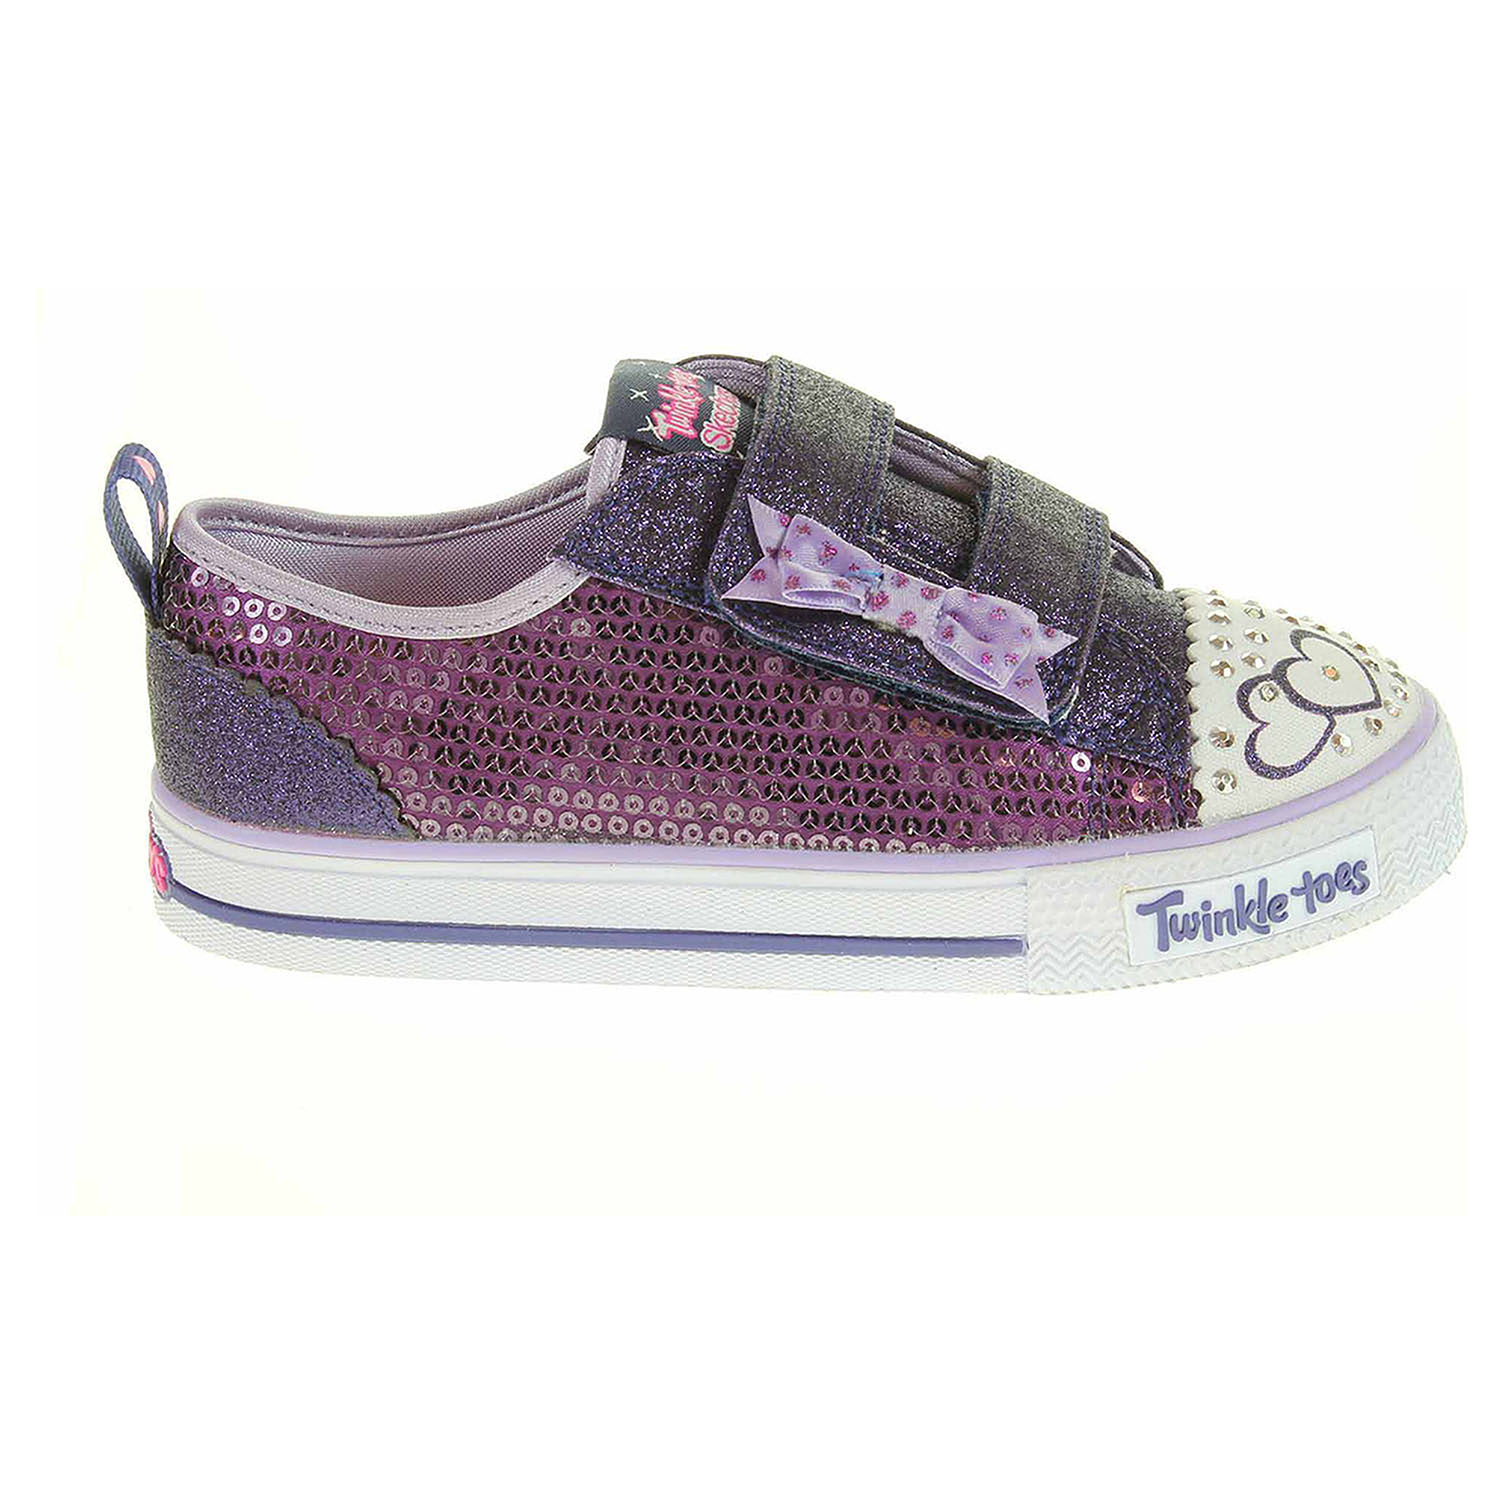 Skechers S Lights-Shuffles - Itsy Bitsy purple-blue